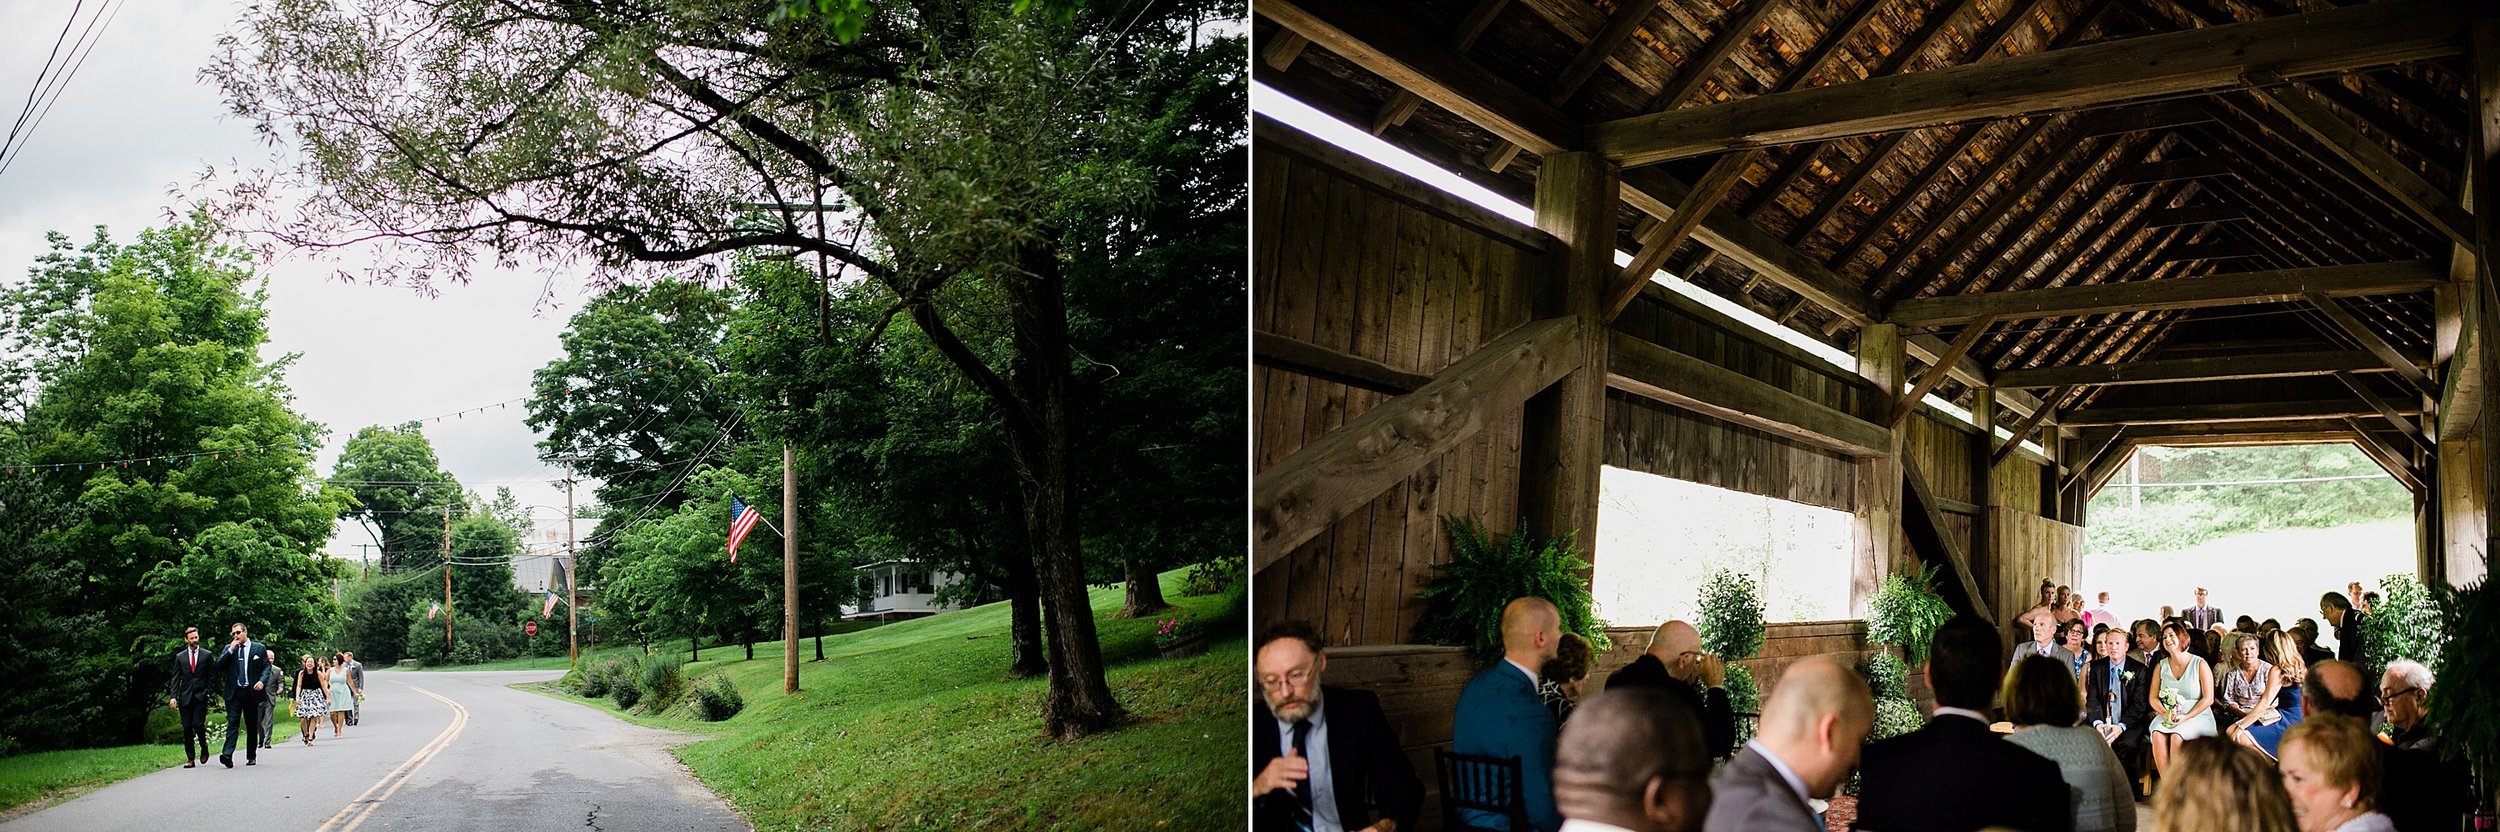 025-los-angeles-wedding-photography-todd-danforth-vermont.jpg